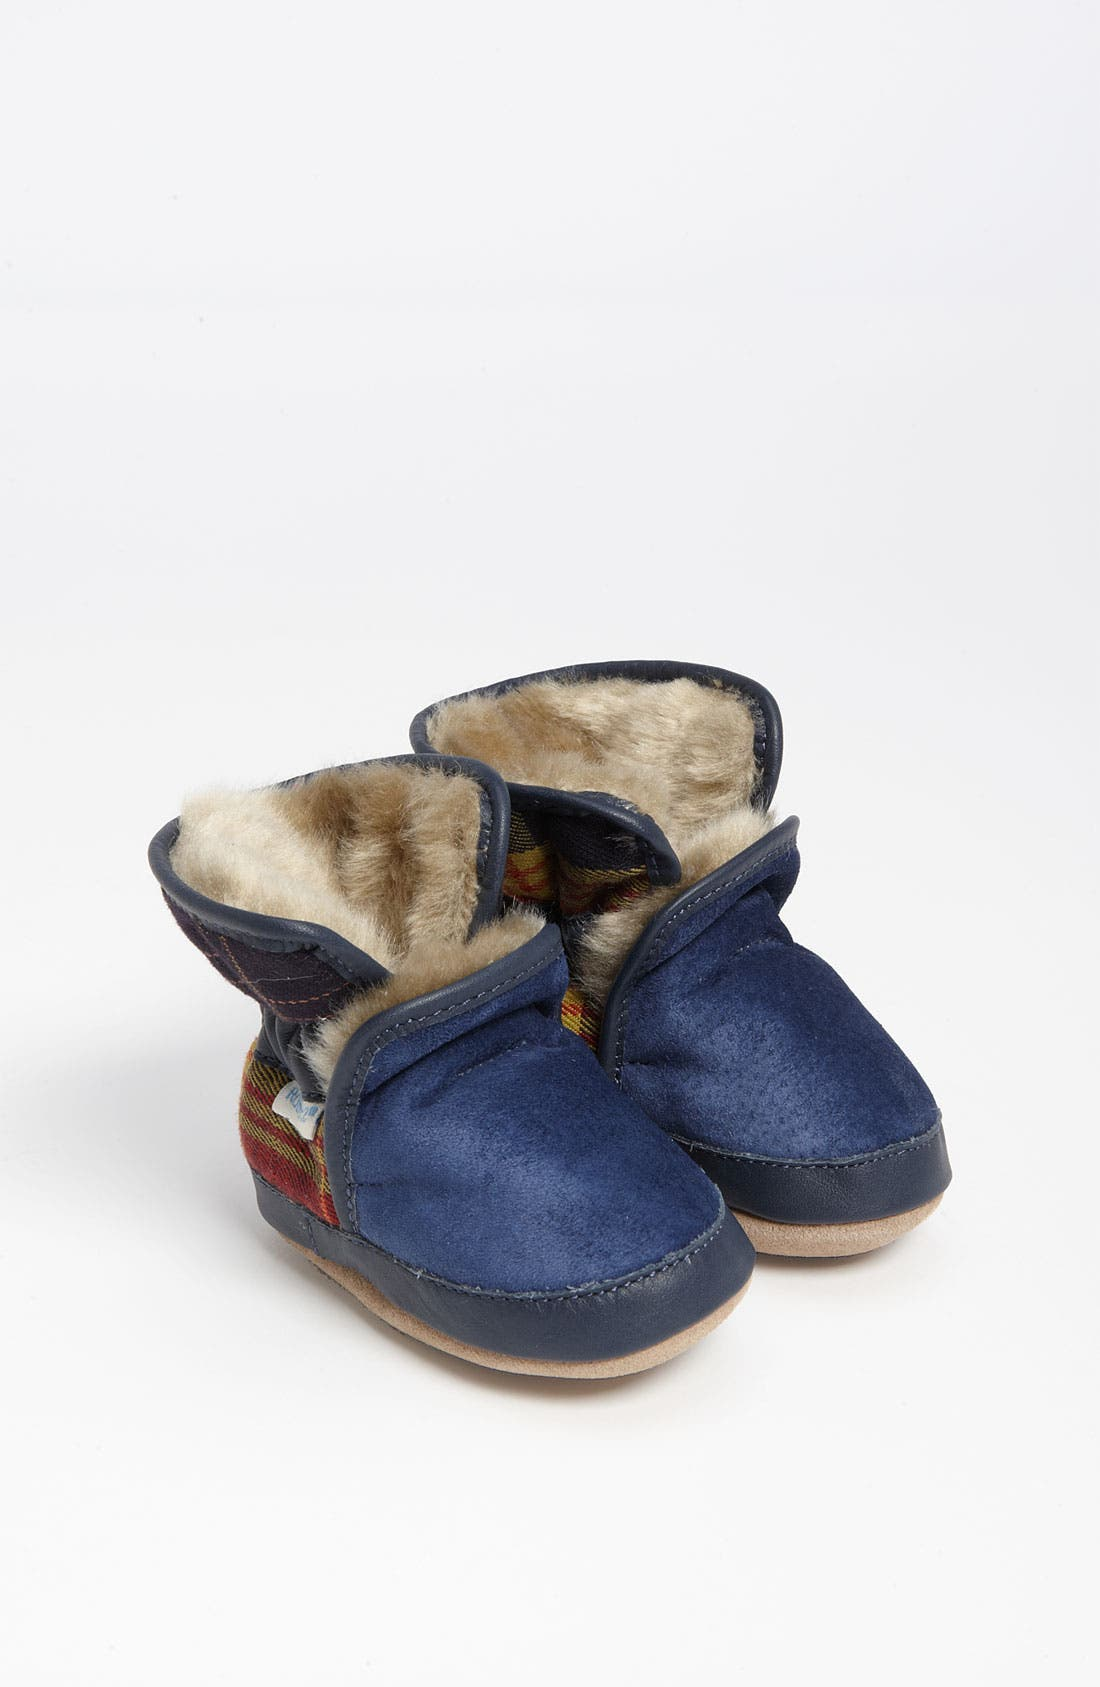 Alternate Image 1 Selected - Robeez® 'Cozy' Ankle Bootie (Baby & Walker)